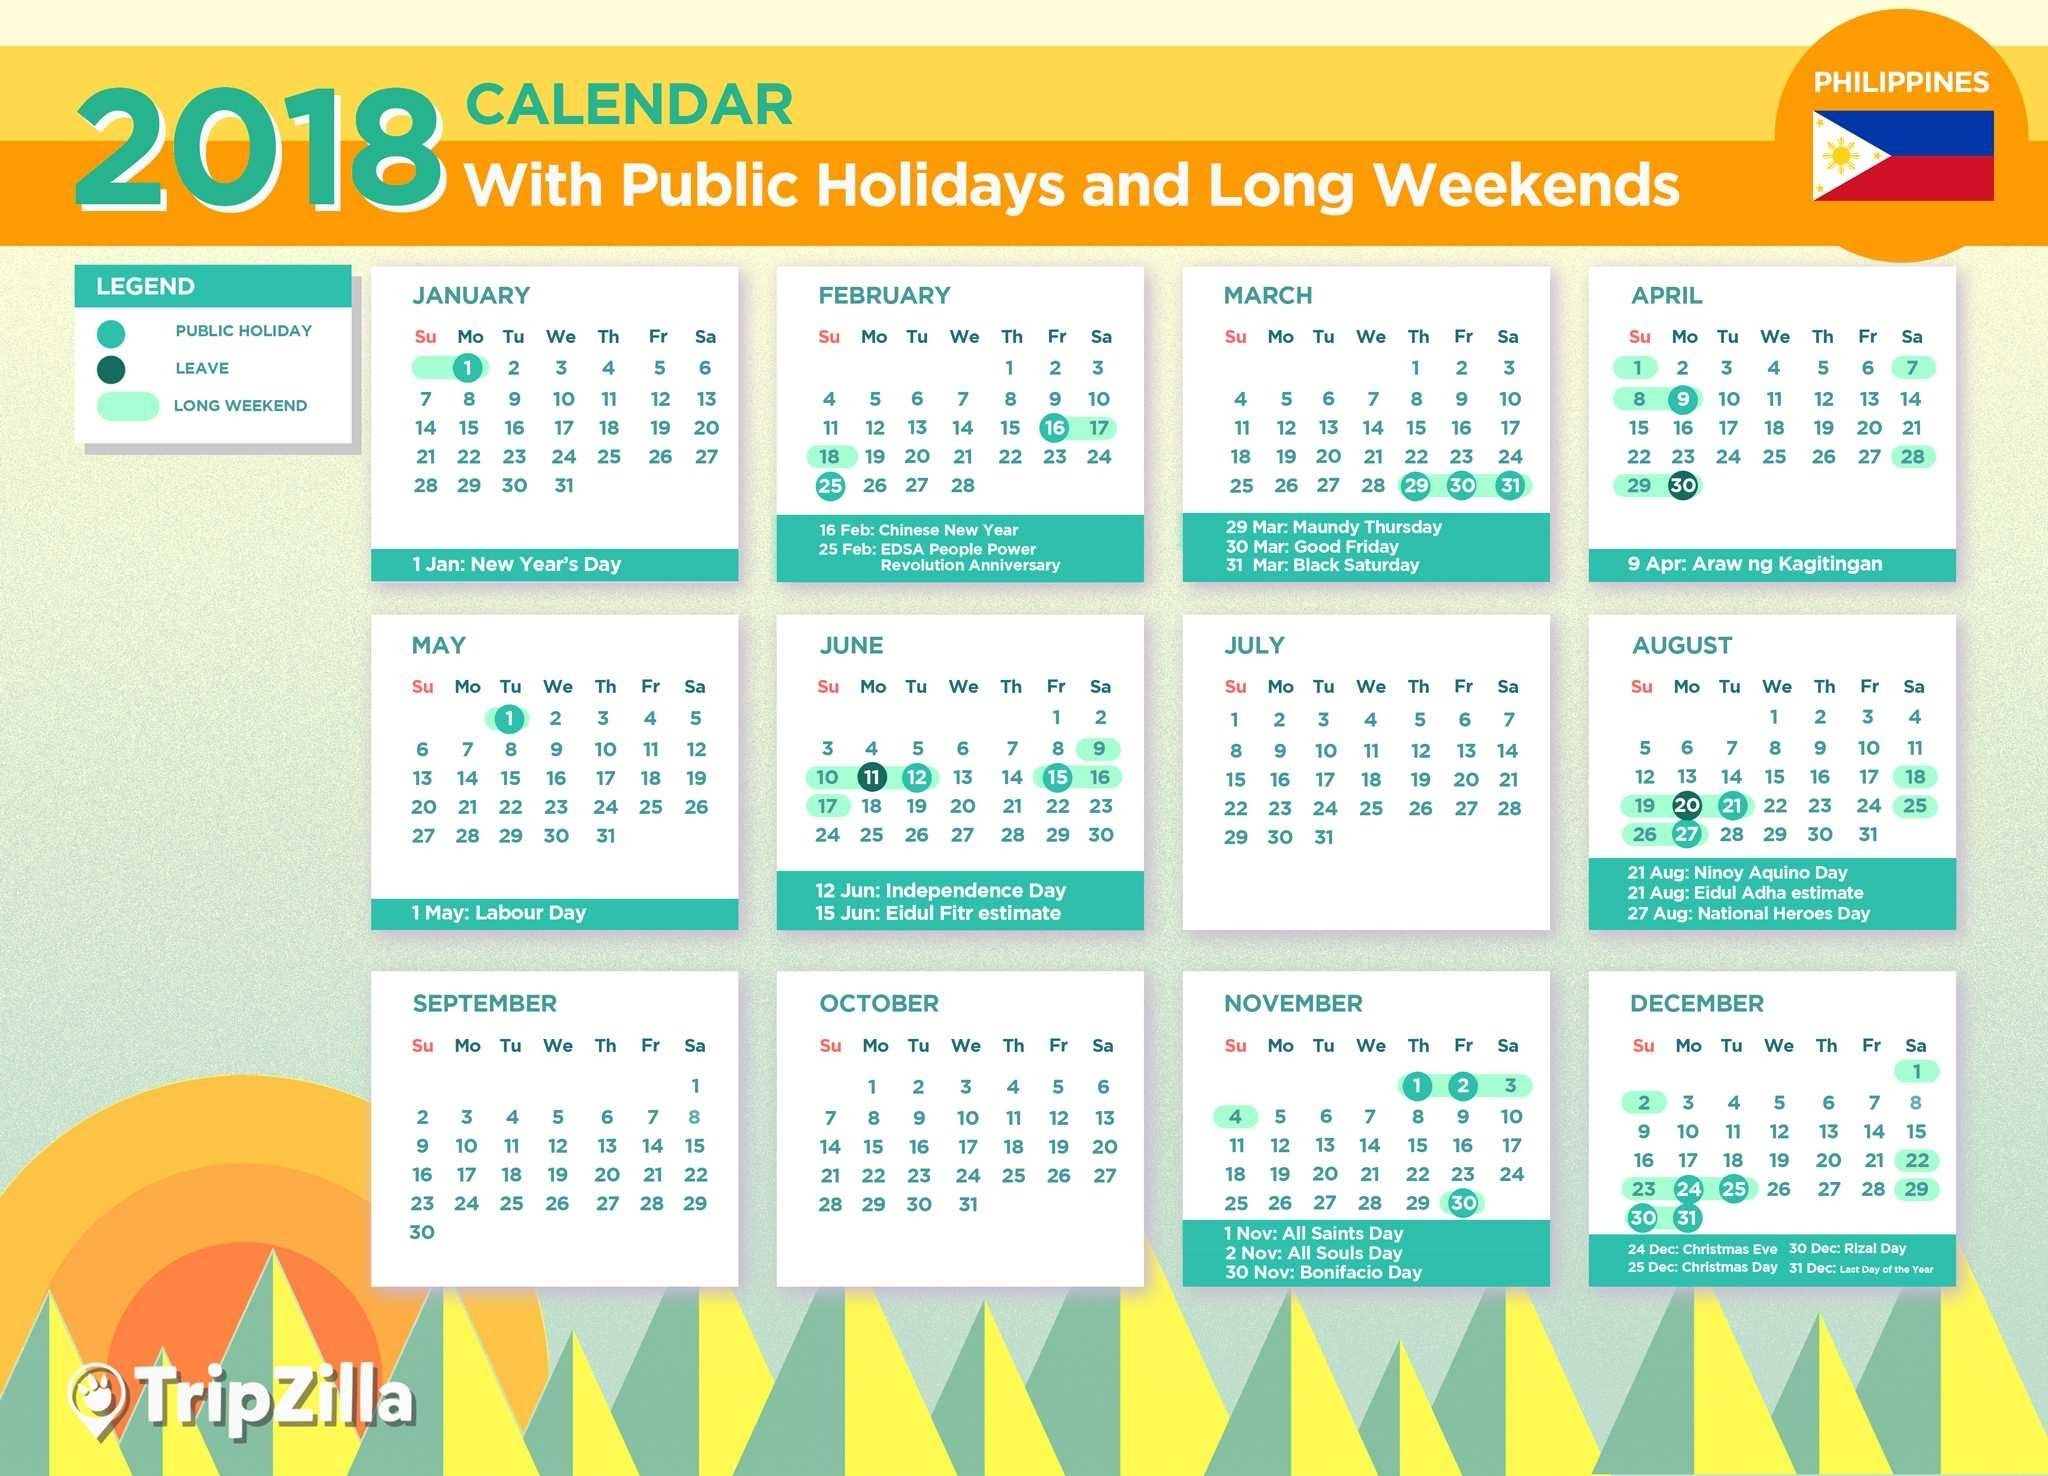 13 Long Weekends In The Philippines In 2018 with Islamic Calendar For The Philippines